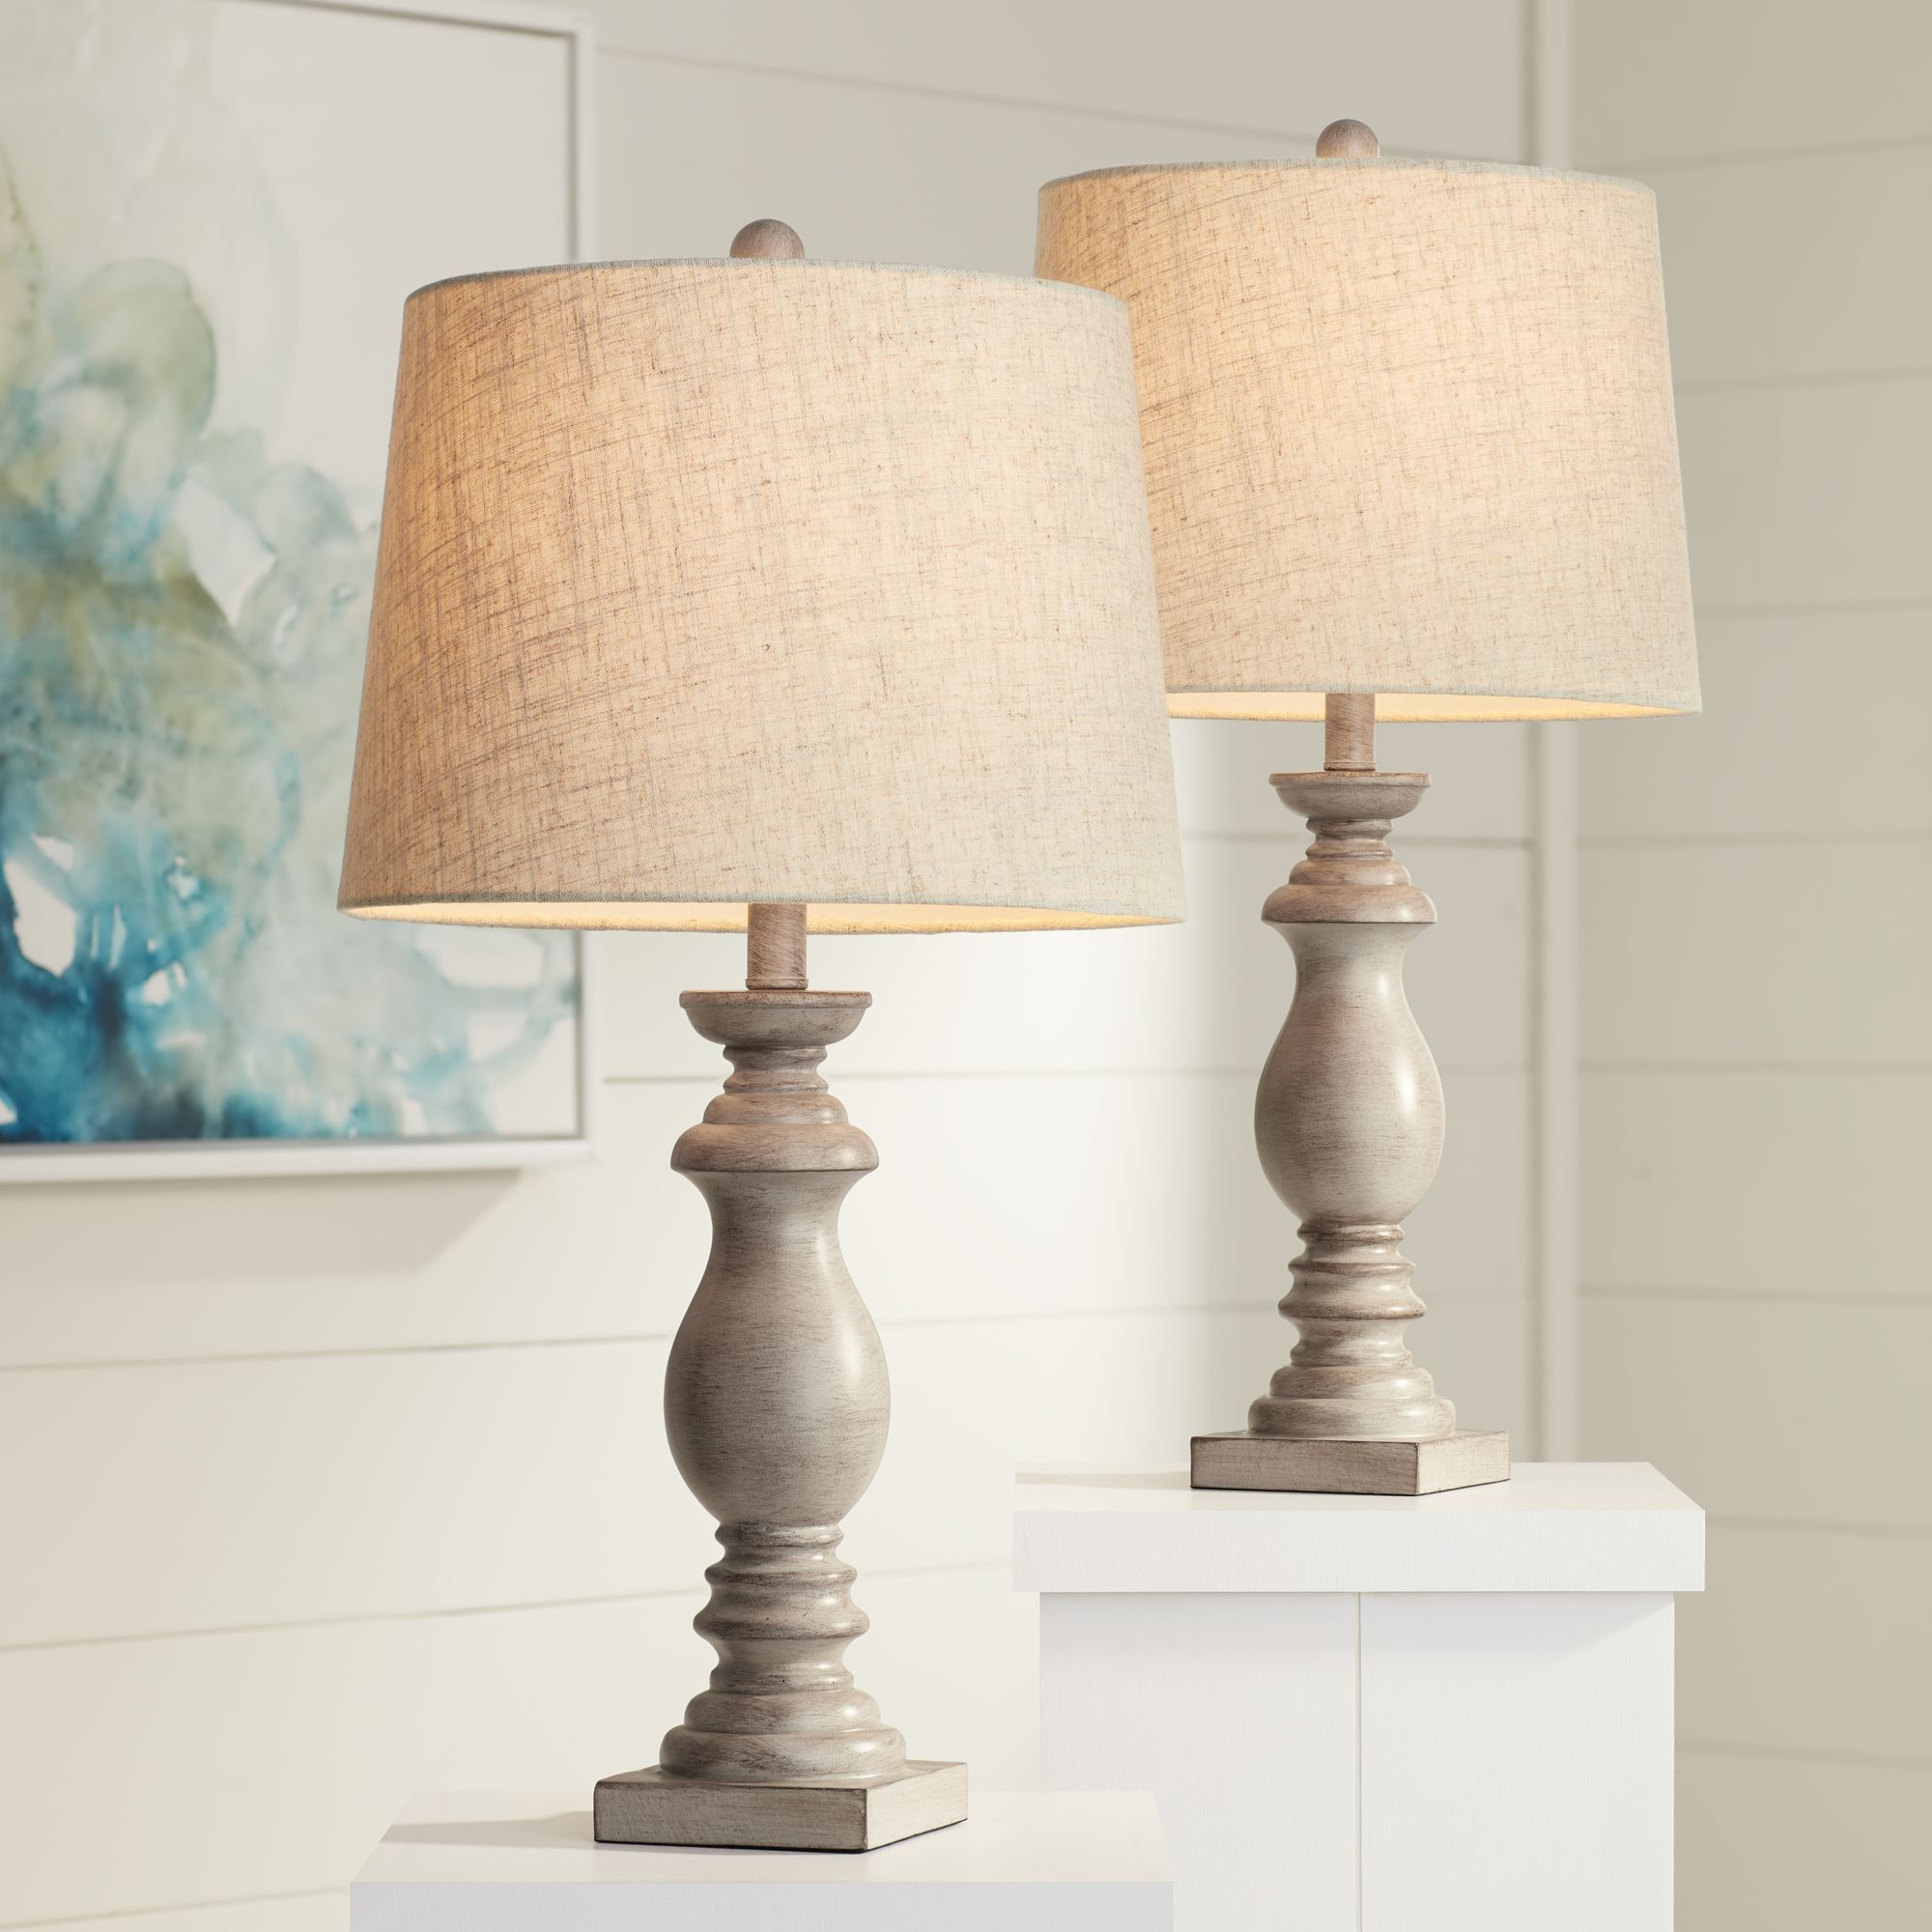 Home Table Lamp Sets Traditional Table Lamps Farmhouse Table Lamps